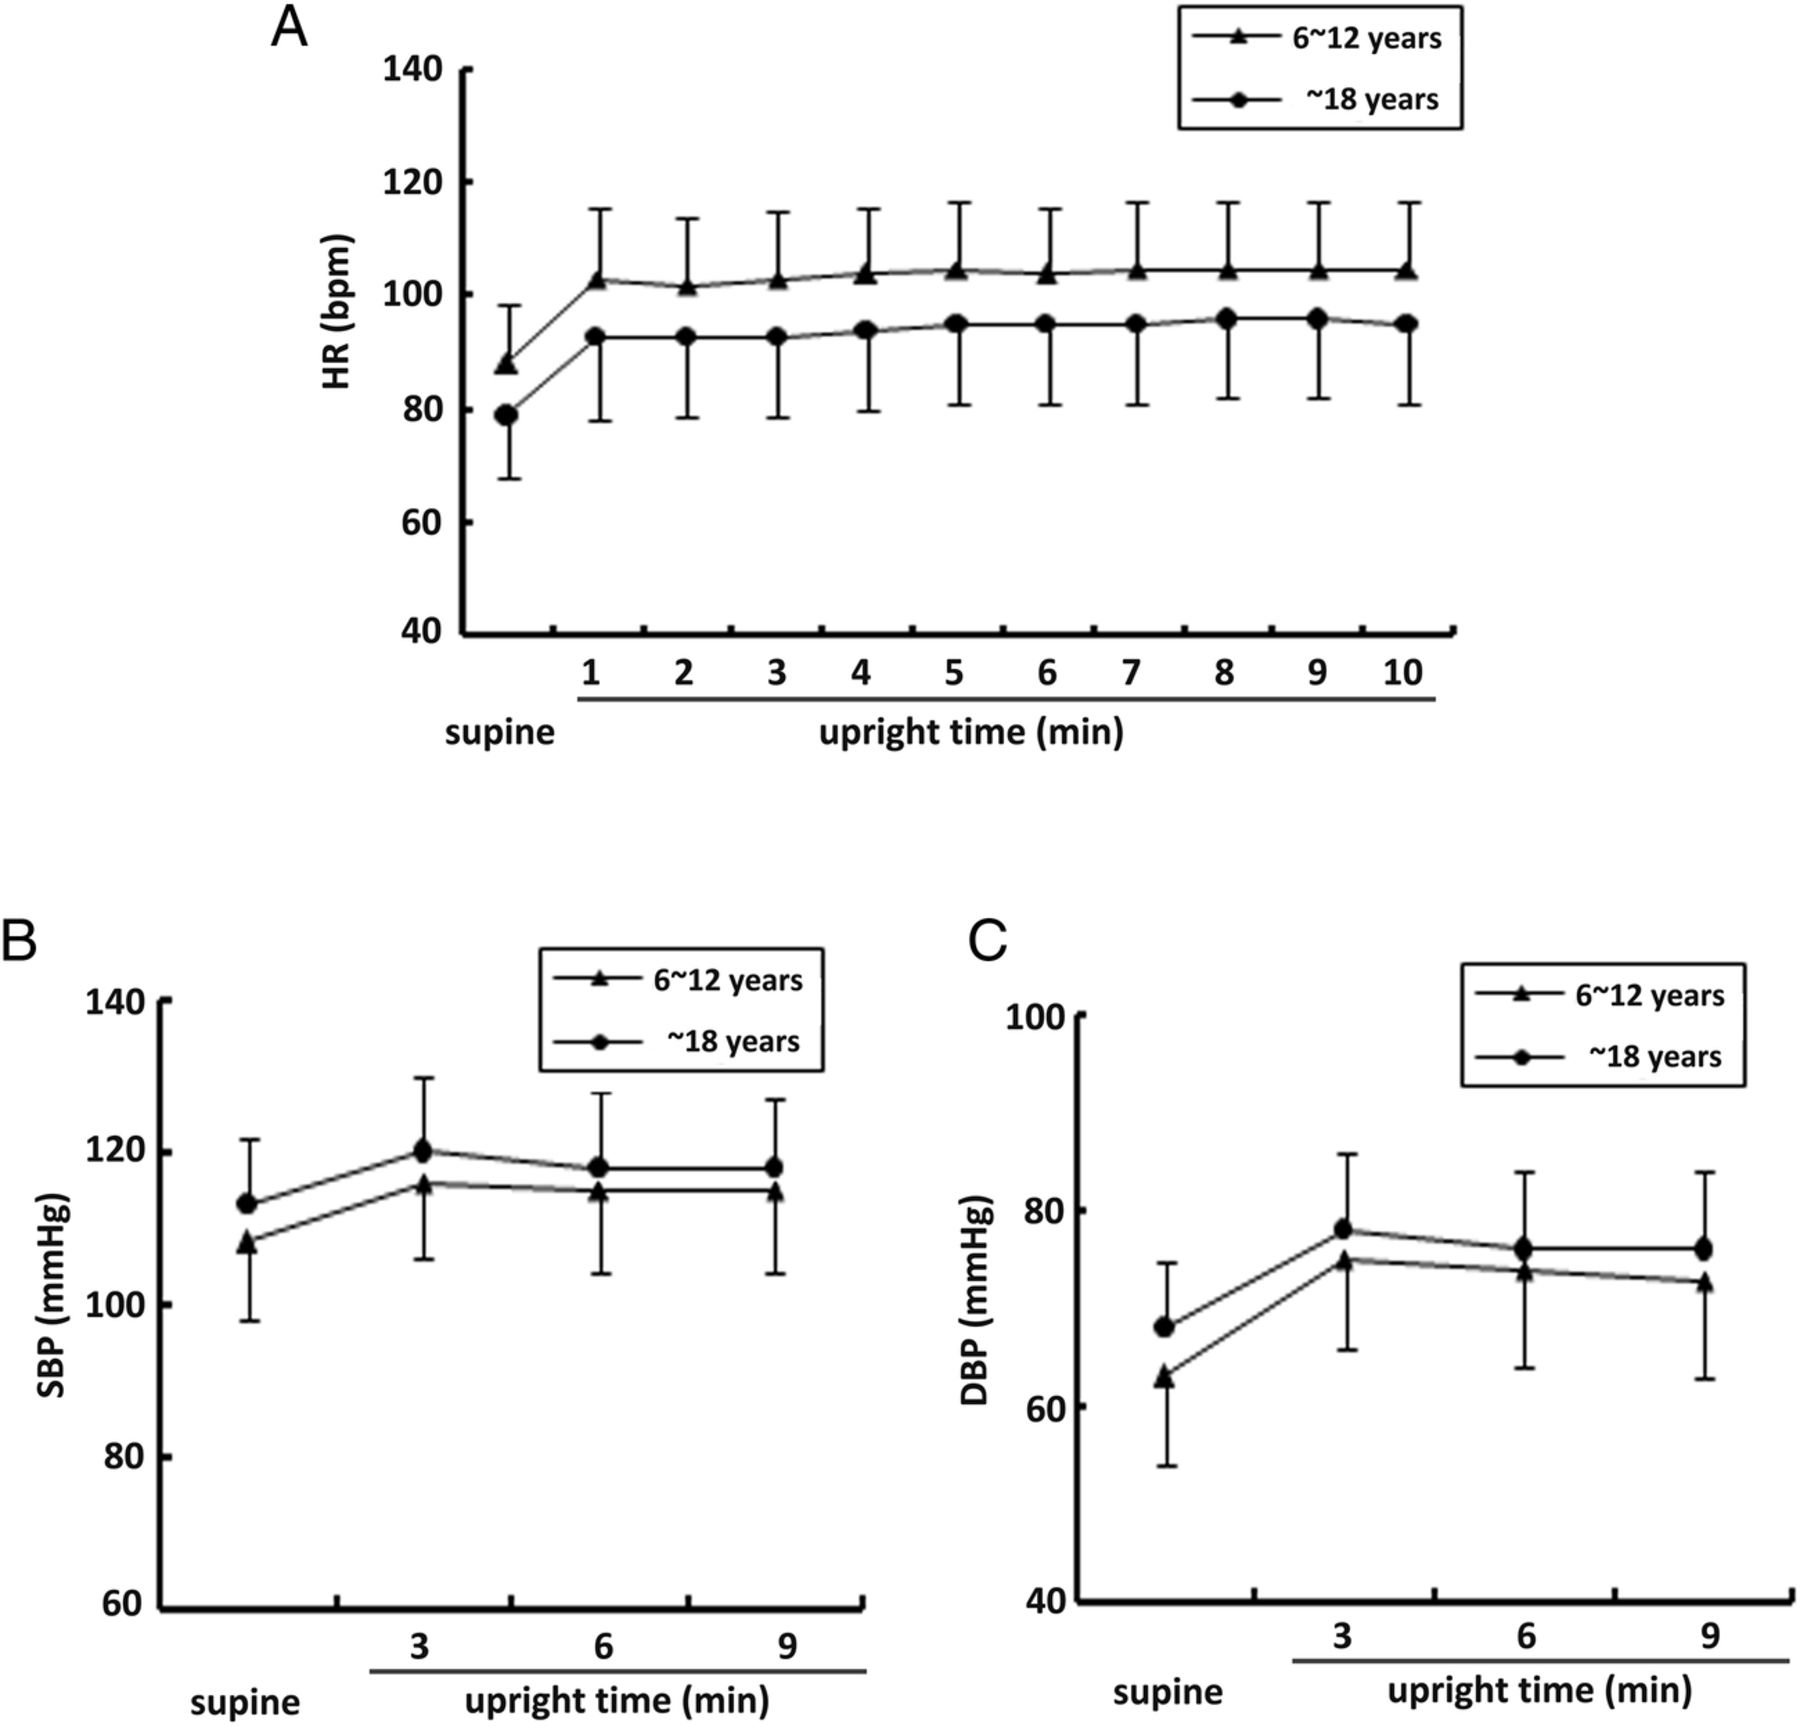 A Cross Sectional Study On Upright Heart Rate And Bp Changing